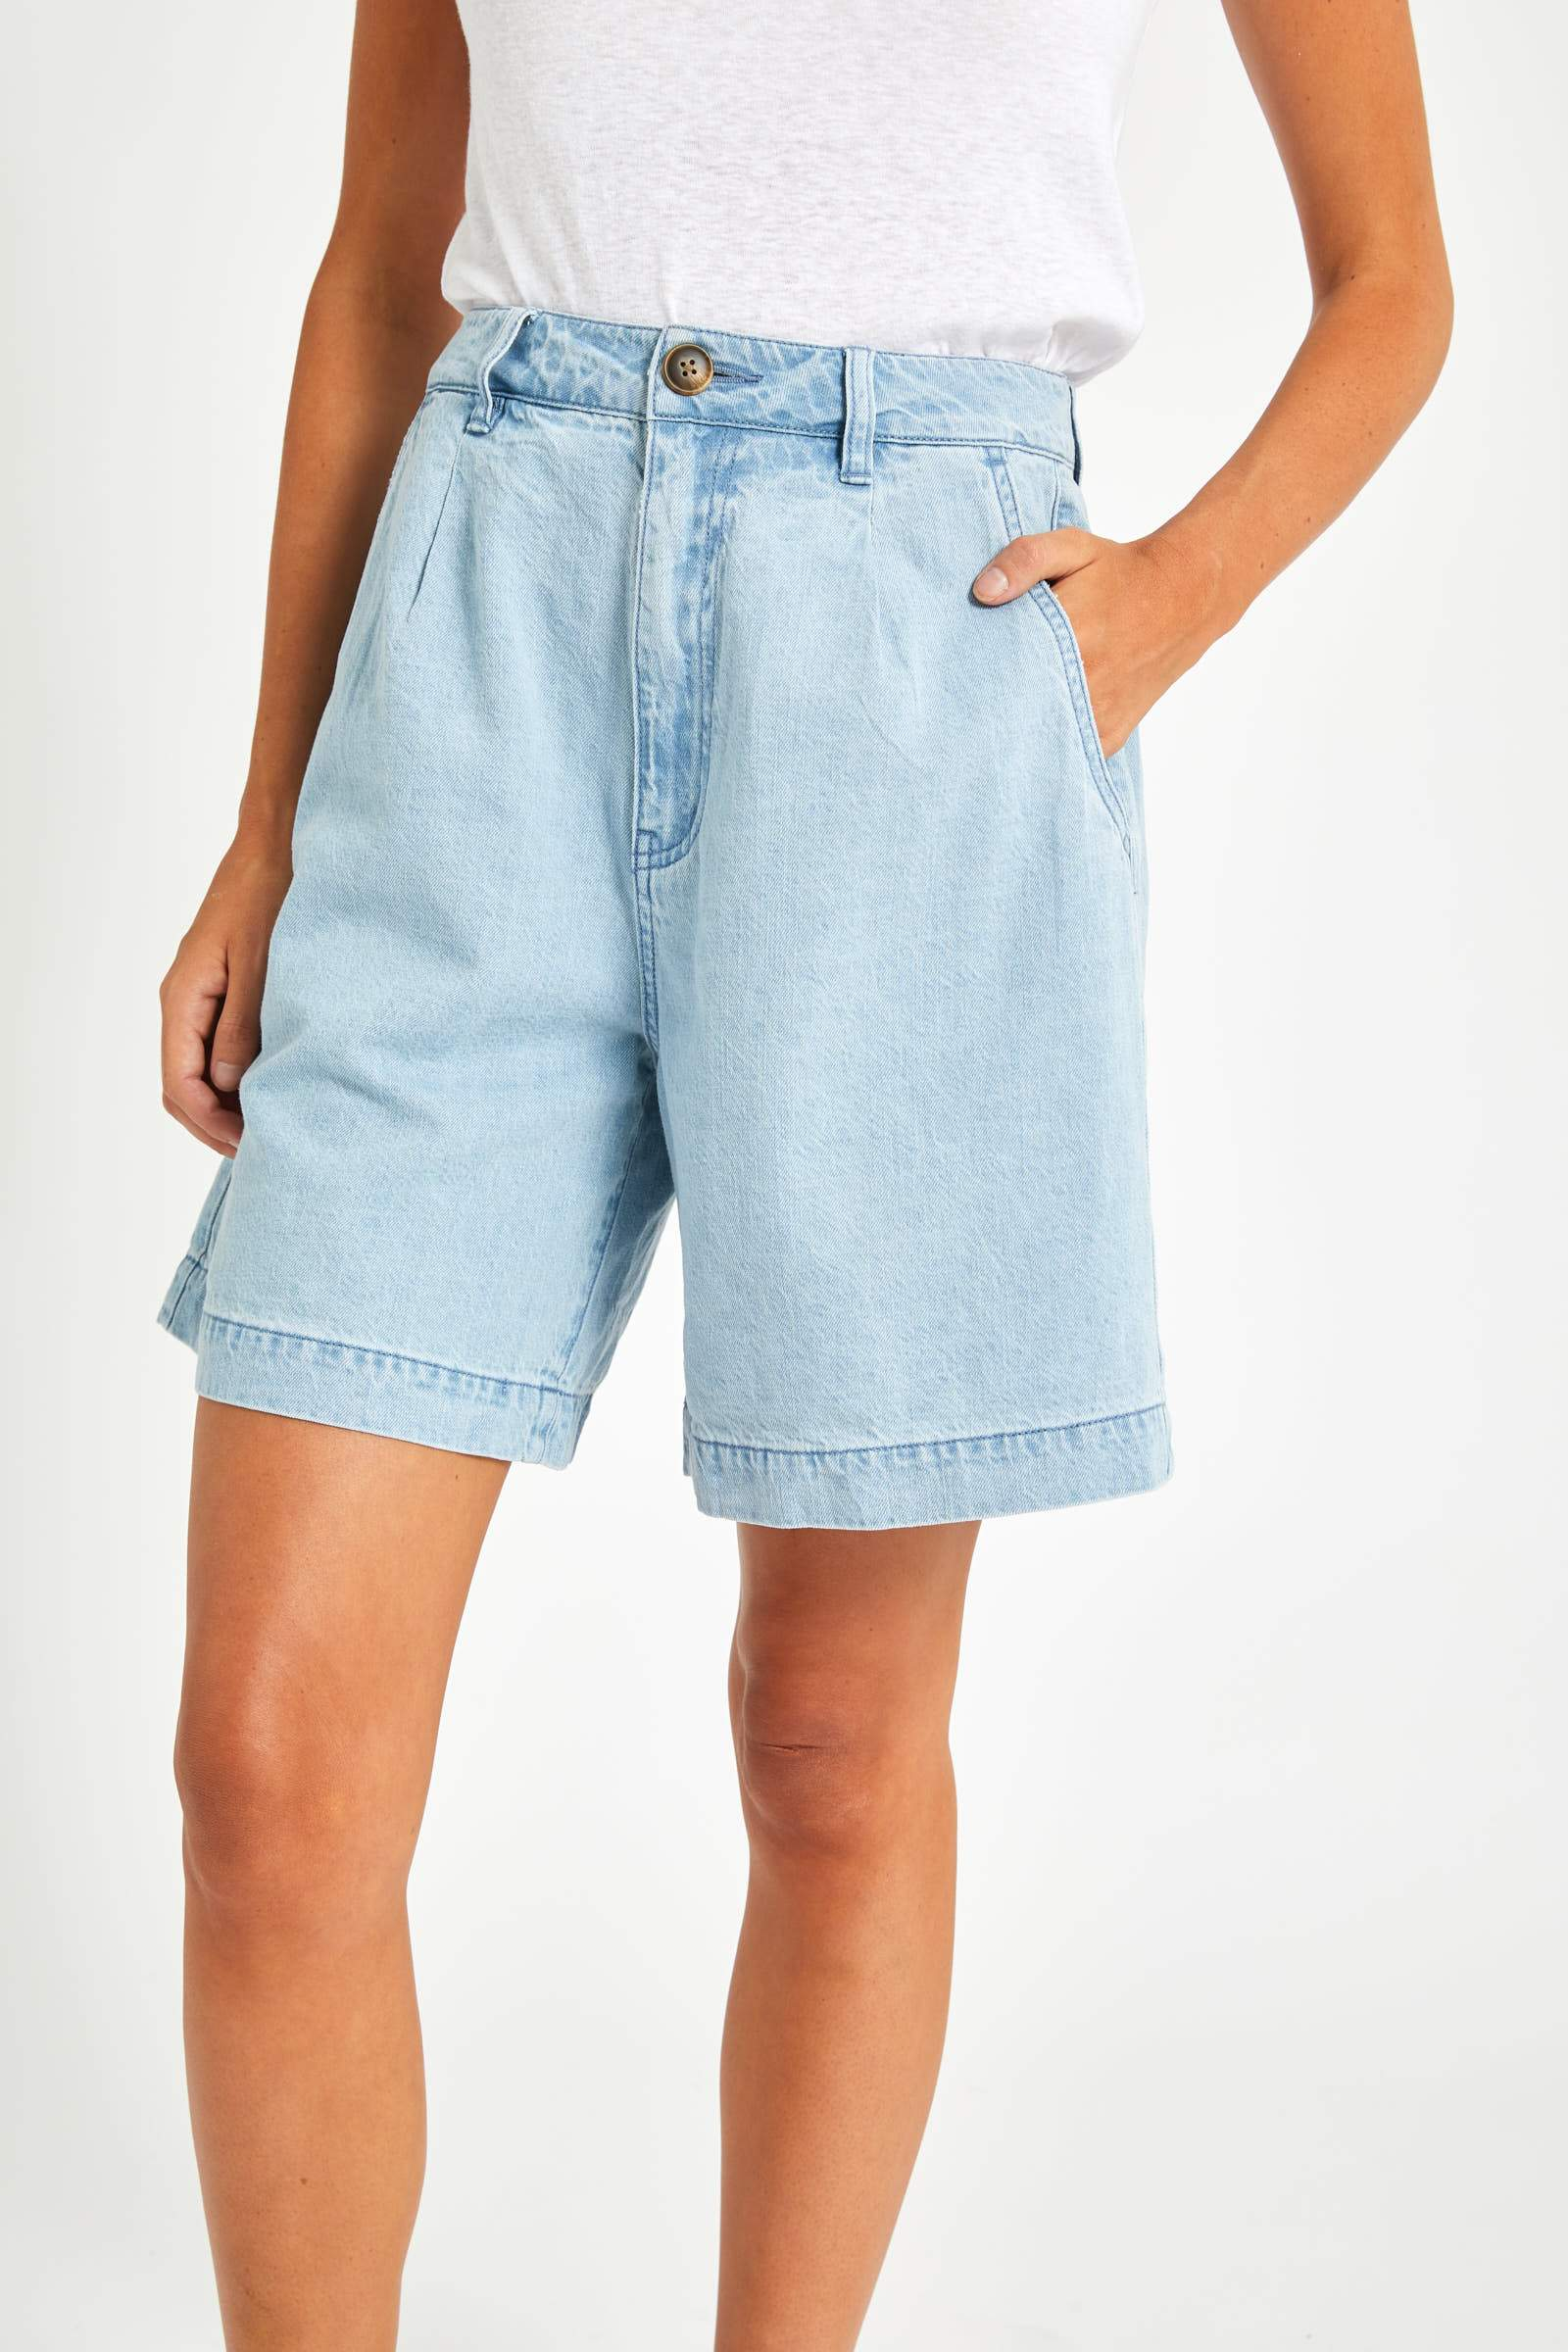 ROLLAS W'S SHORTS HORIZON SHORT - BLUE STONE